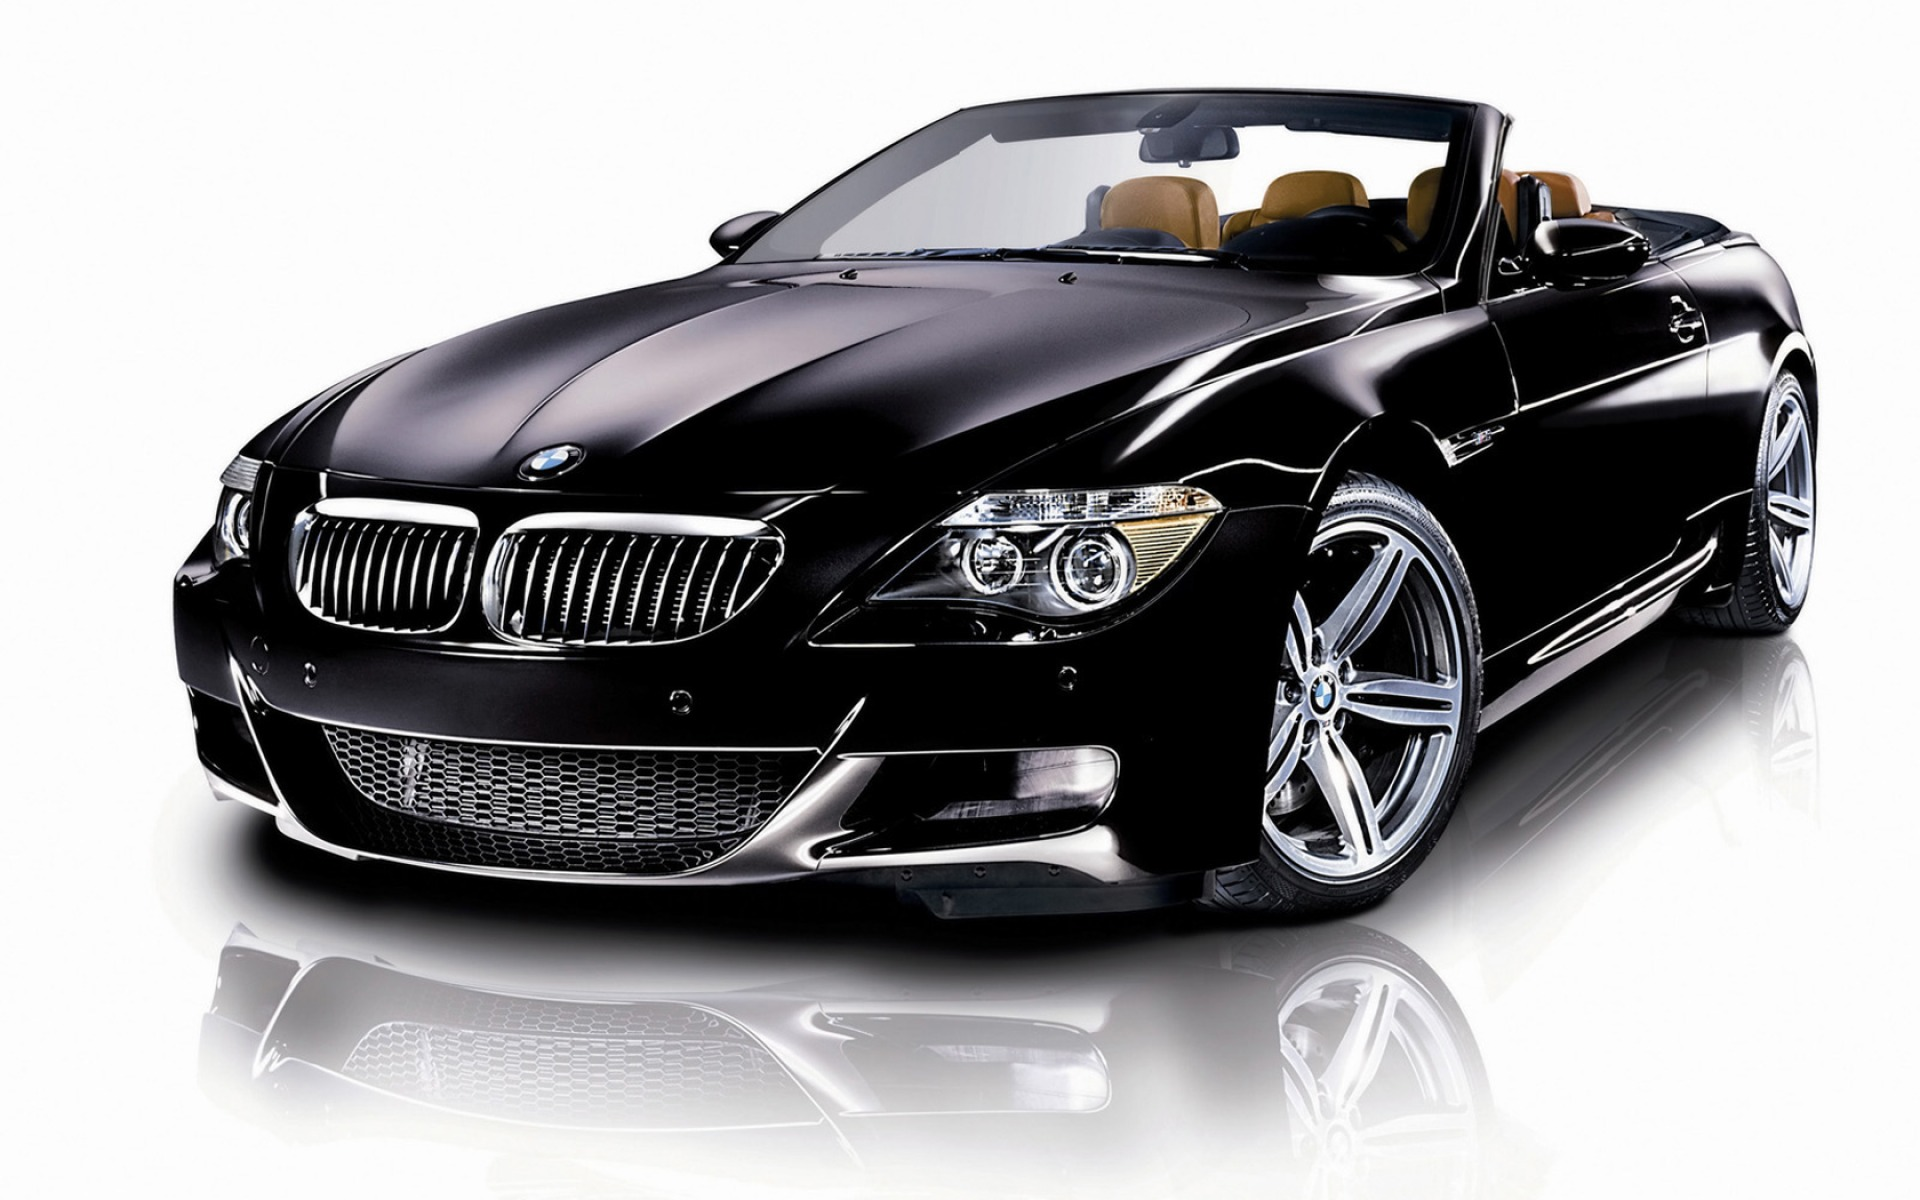 Ultrablogus  Scenic Bmw Car Wallpaper Wallpapers For Free Download About   With Magnificent Bmw M Convertible Wallpaper Bmw Cars With Adorable Ford Excursion Interior Parts Also How To Install Interior Led Lights In Car In Addition Bmw Interior Seats And Trans Am Interior Parts As Well As  Corvette Interior Additionally How To Unlock Interior Door From Allfreedownloadcom With Ultrablogus  Magnificent Bmw Car Wallpaper Wallpapers For Free Download About   With Adorable Bmw M Convertible Wallpaper Bmw Cars And Scenic Ford Excursion Interior Parts Also How To Install Interior Led Lights In Car In Addition Bmw Interior Seats From Allfreedownloadcom